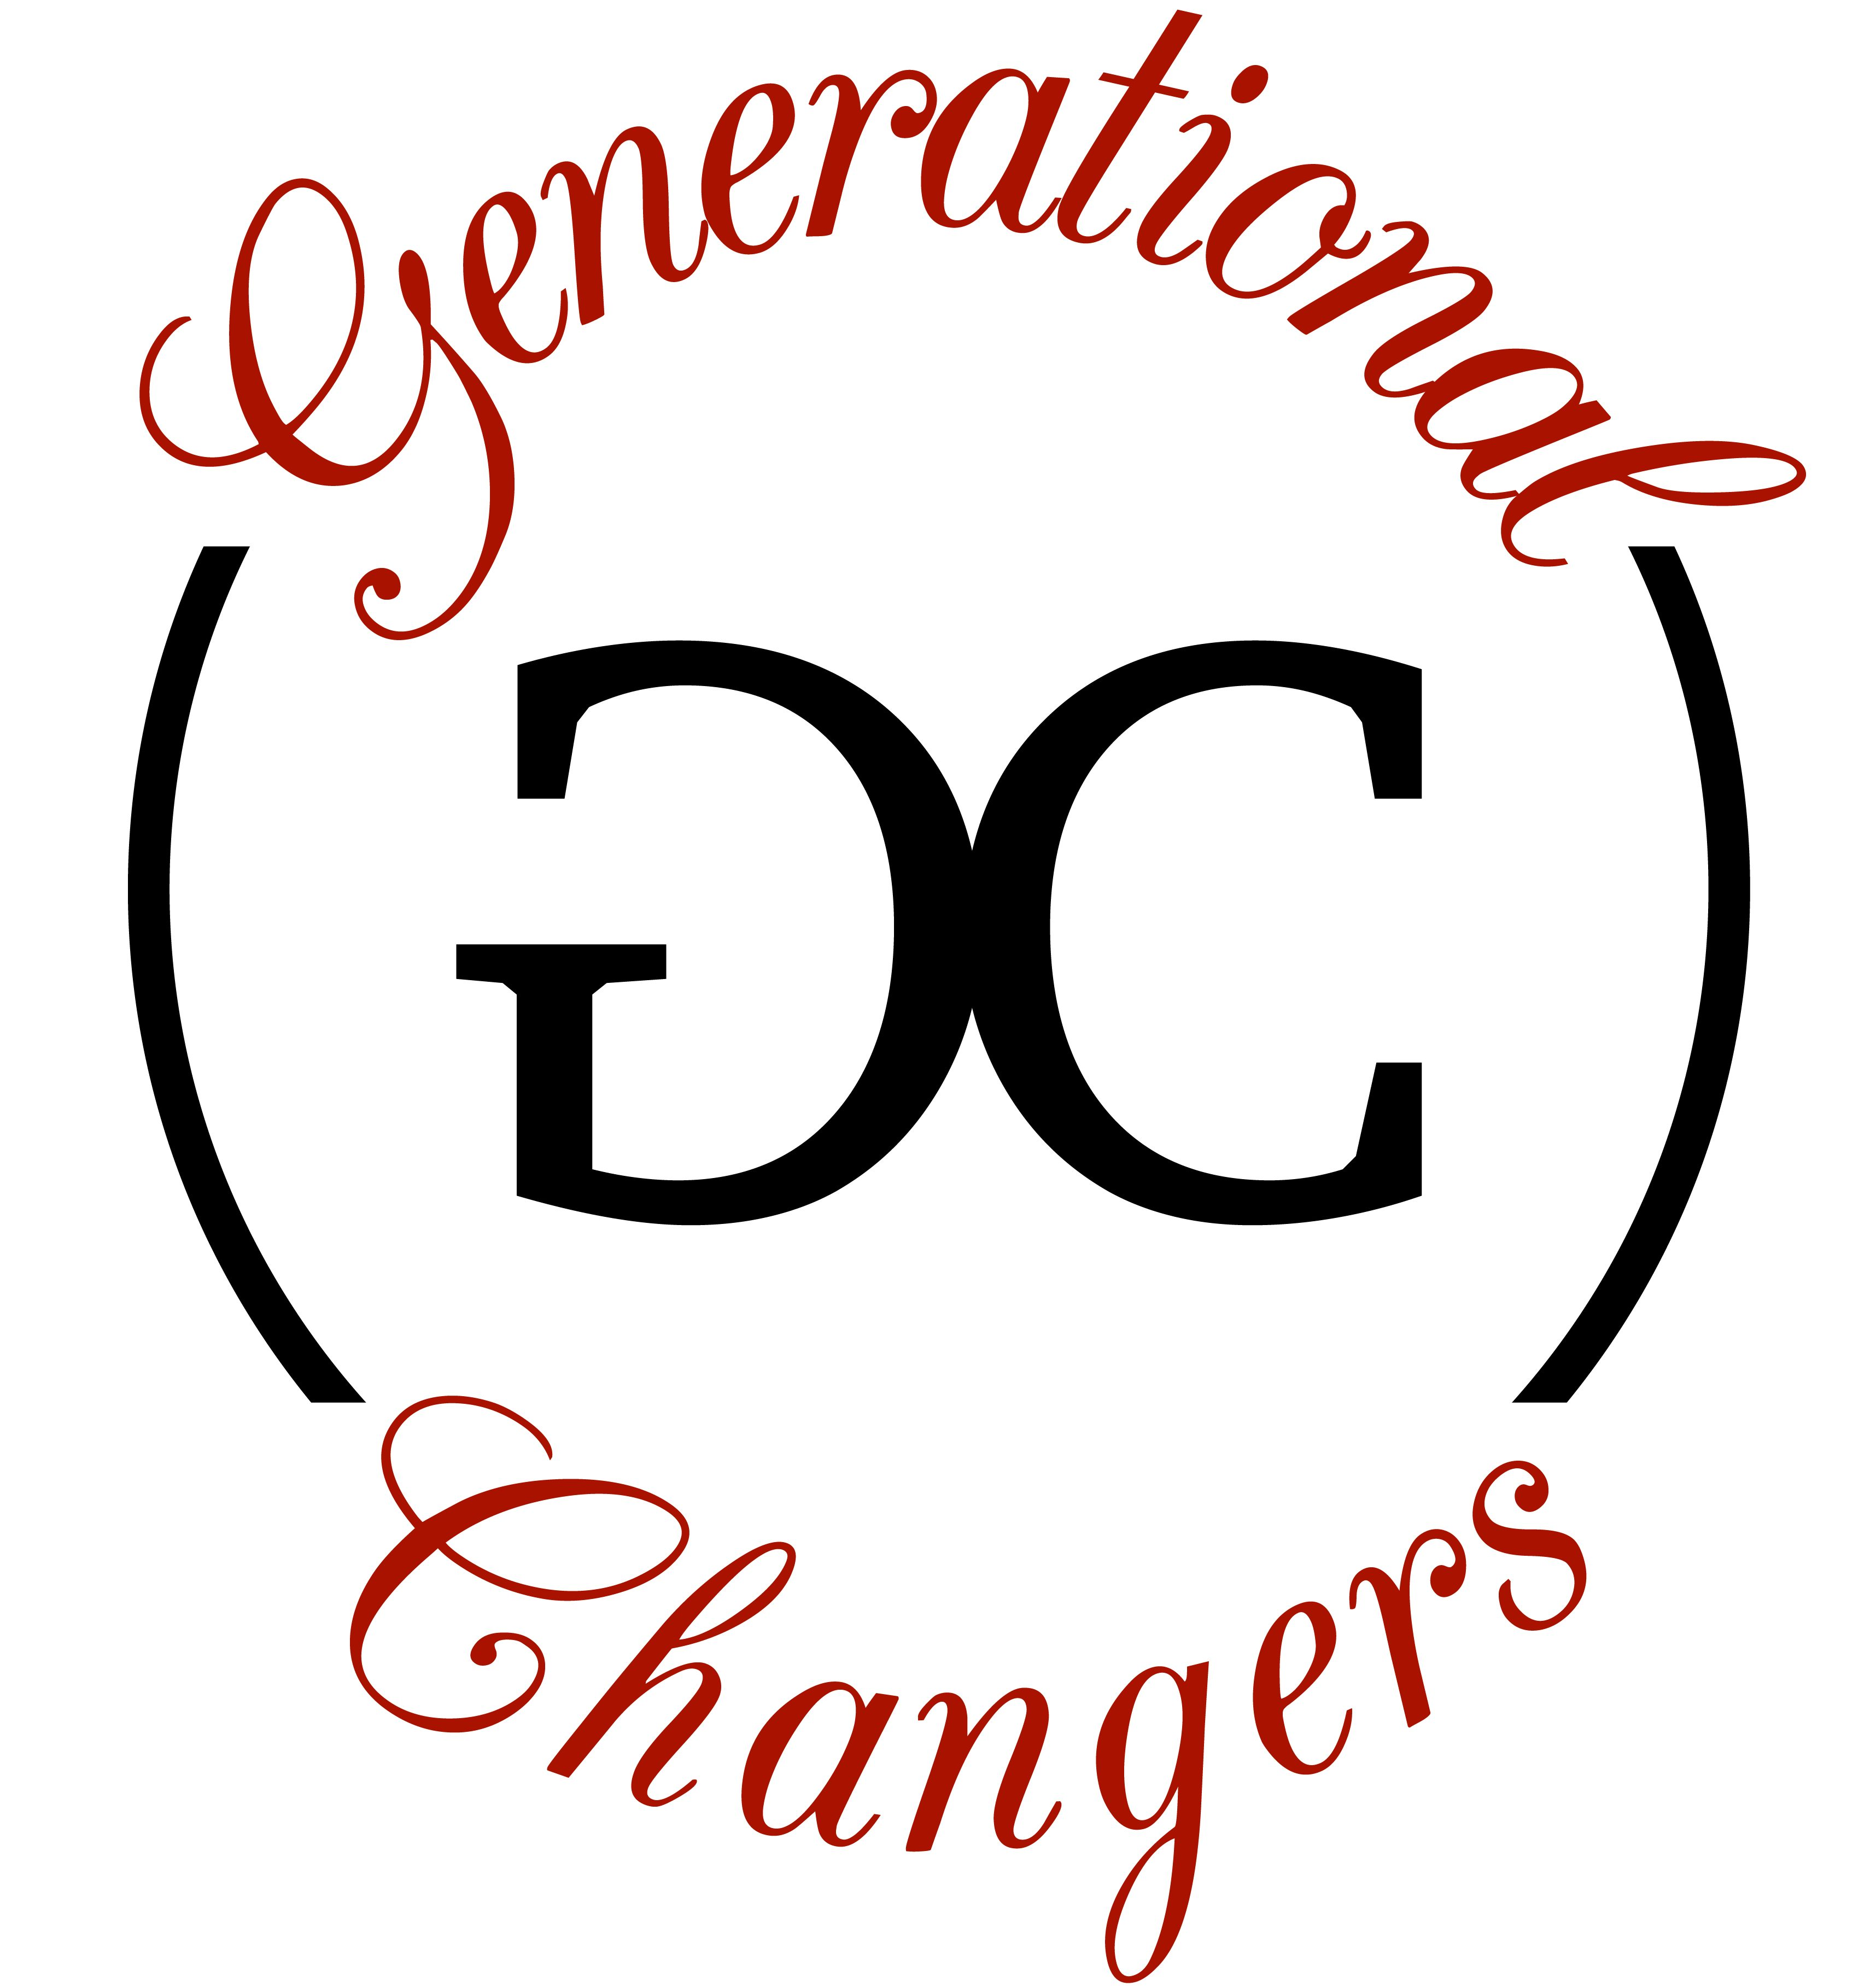 Generational Changers